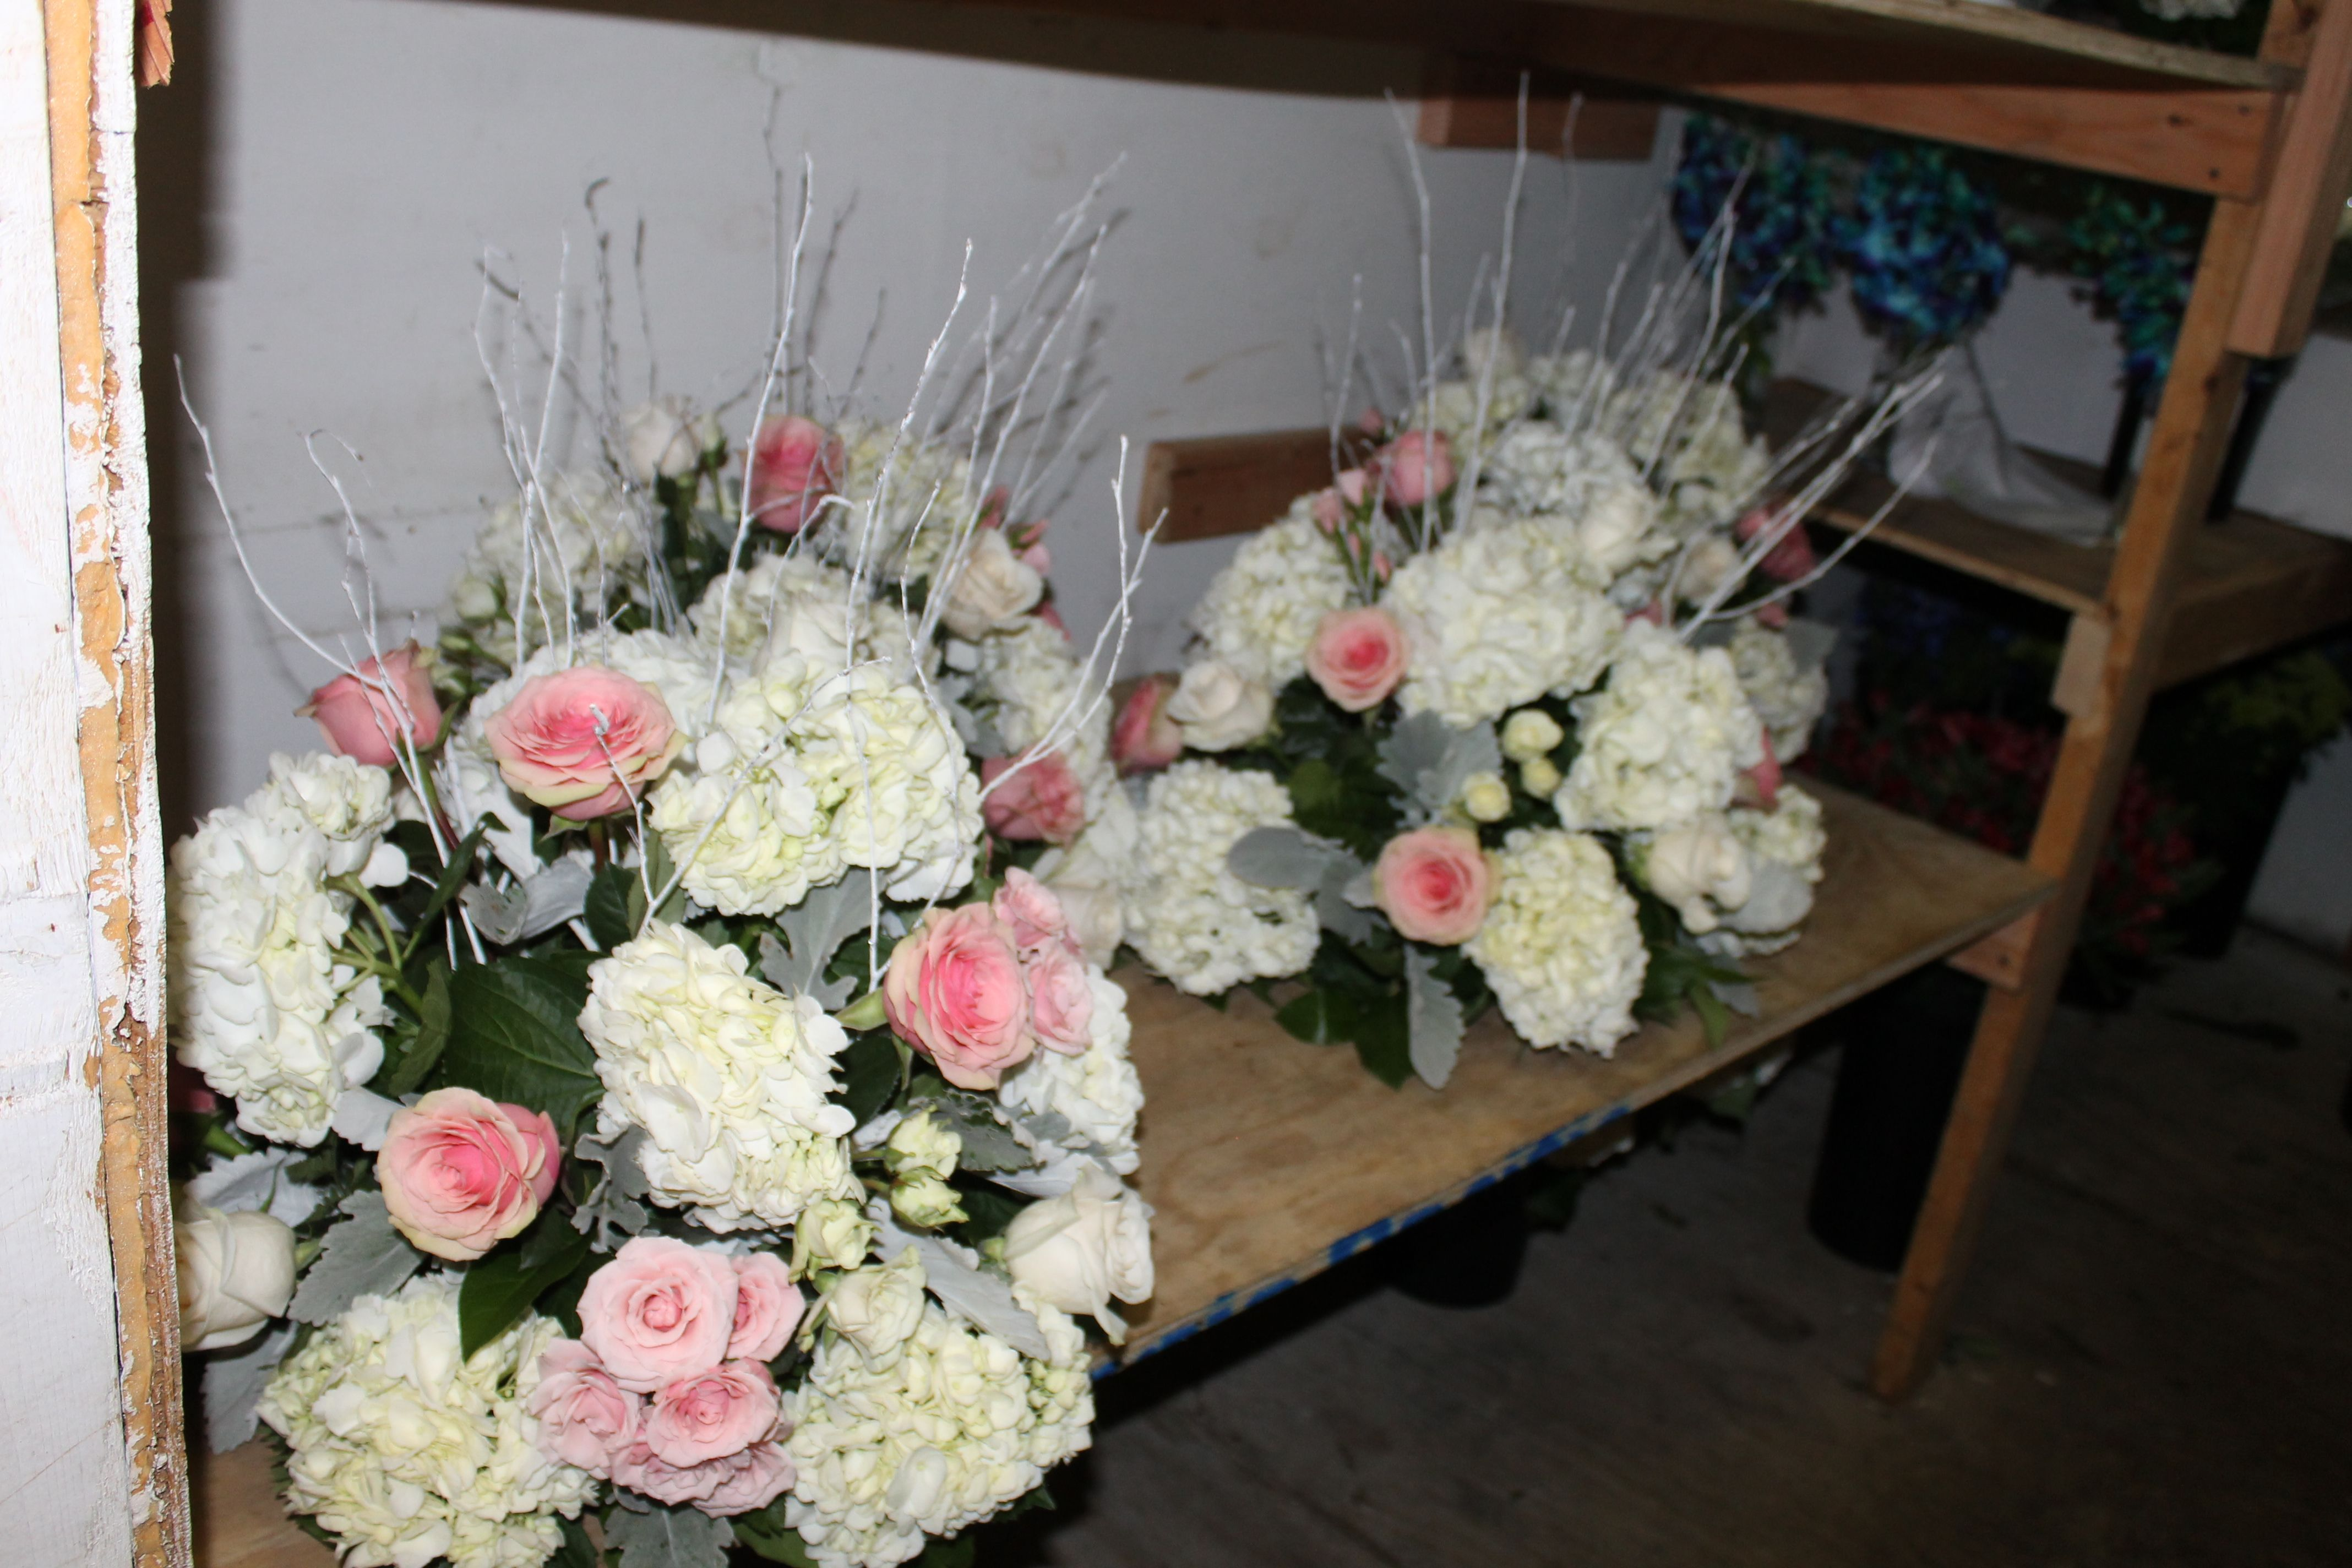 Flowers stephanie glickmans wedding pinterest customer at beautiful beginnings flowers we pride ourselves in our floral artistry cutting edge designs and above all customer service that is second to none izmirmasajfo